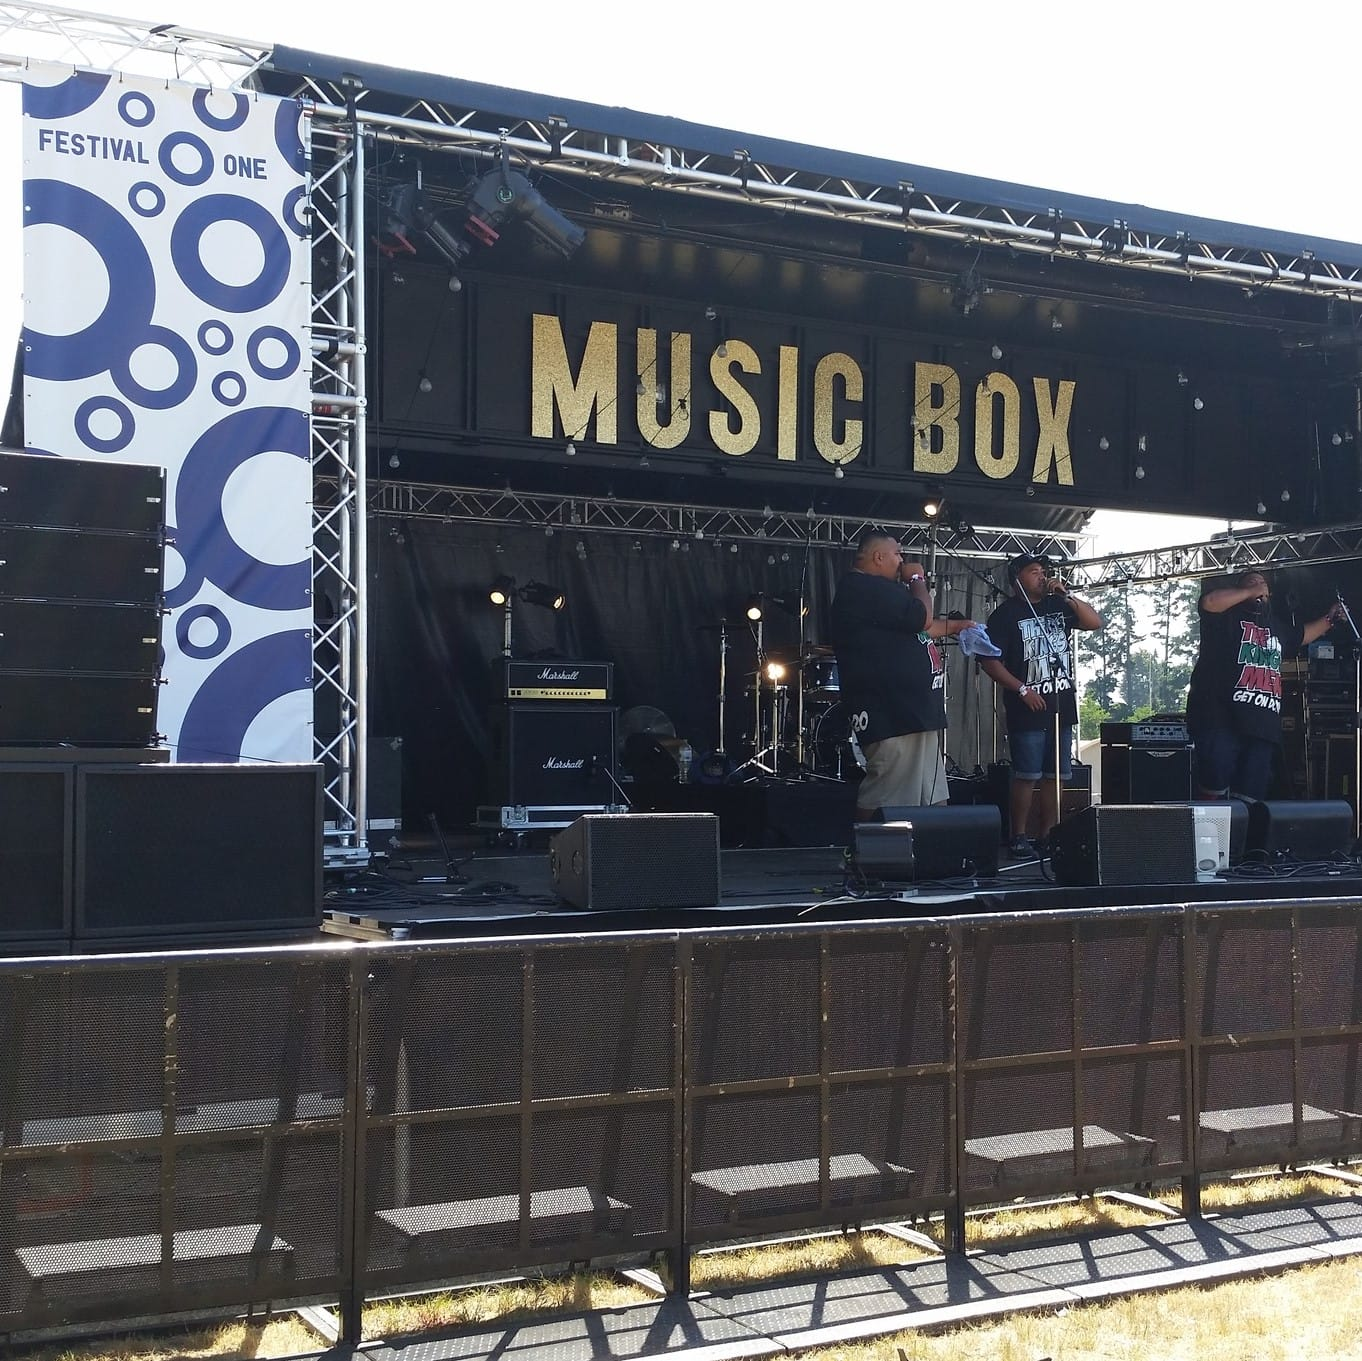 Festival One Music and Arts Event